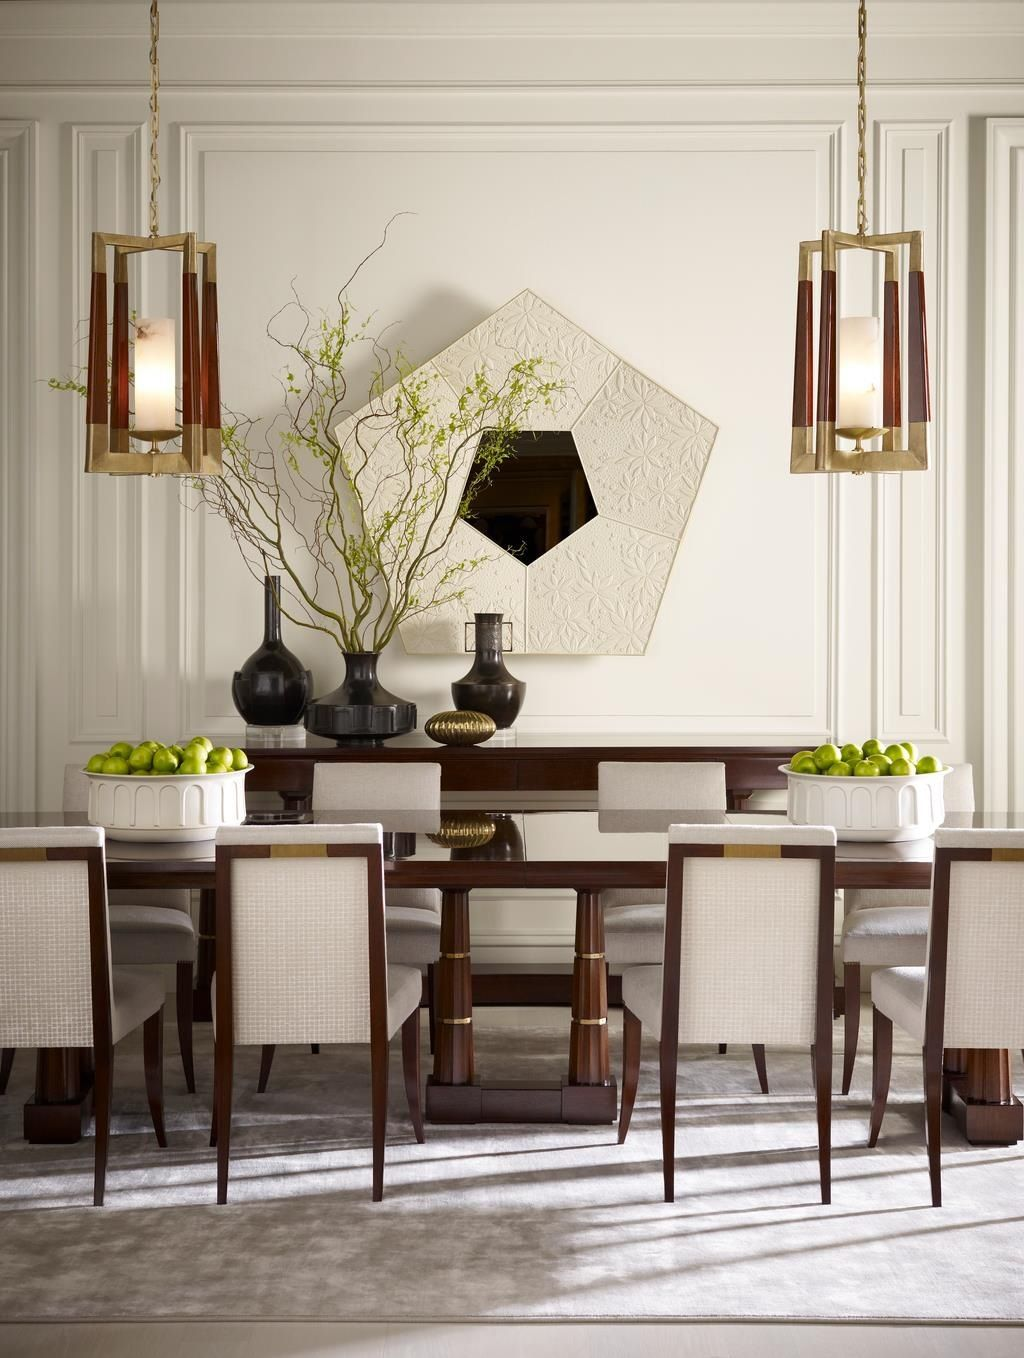 Baker Dining Room With Chic Styling Interior Modern Dining Room